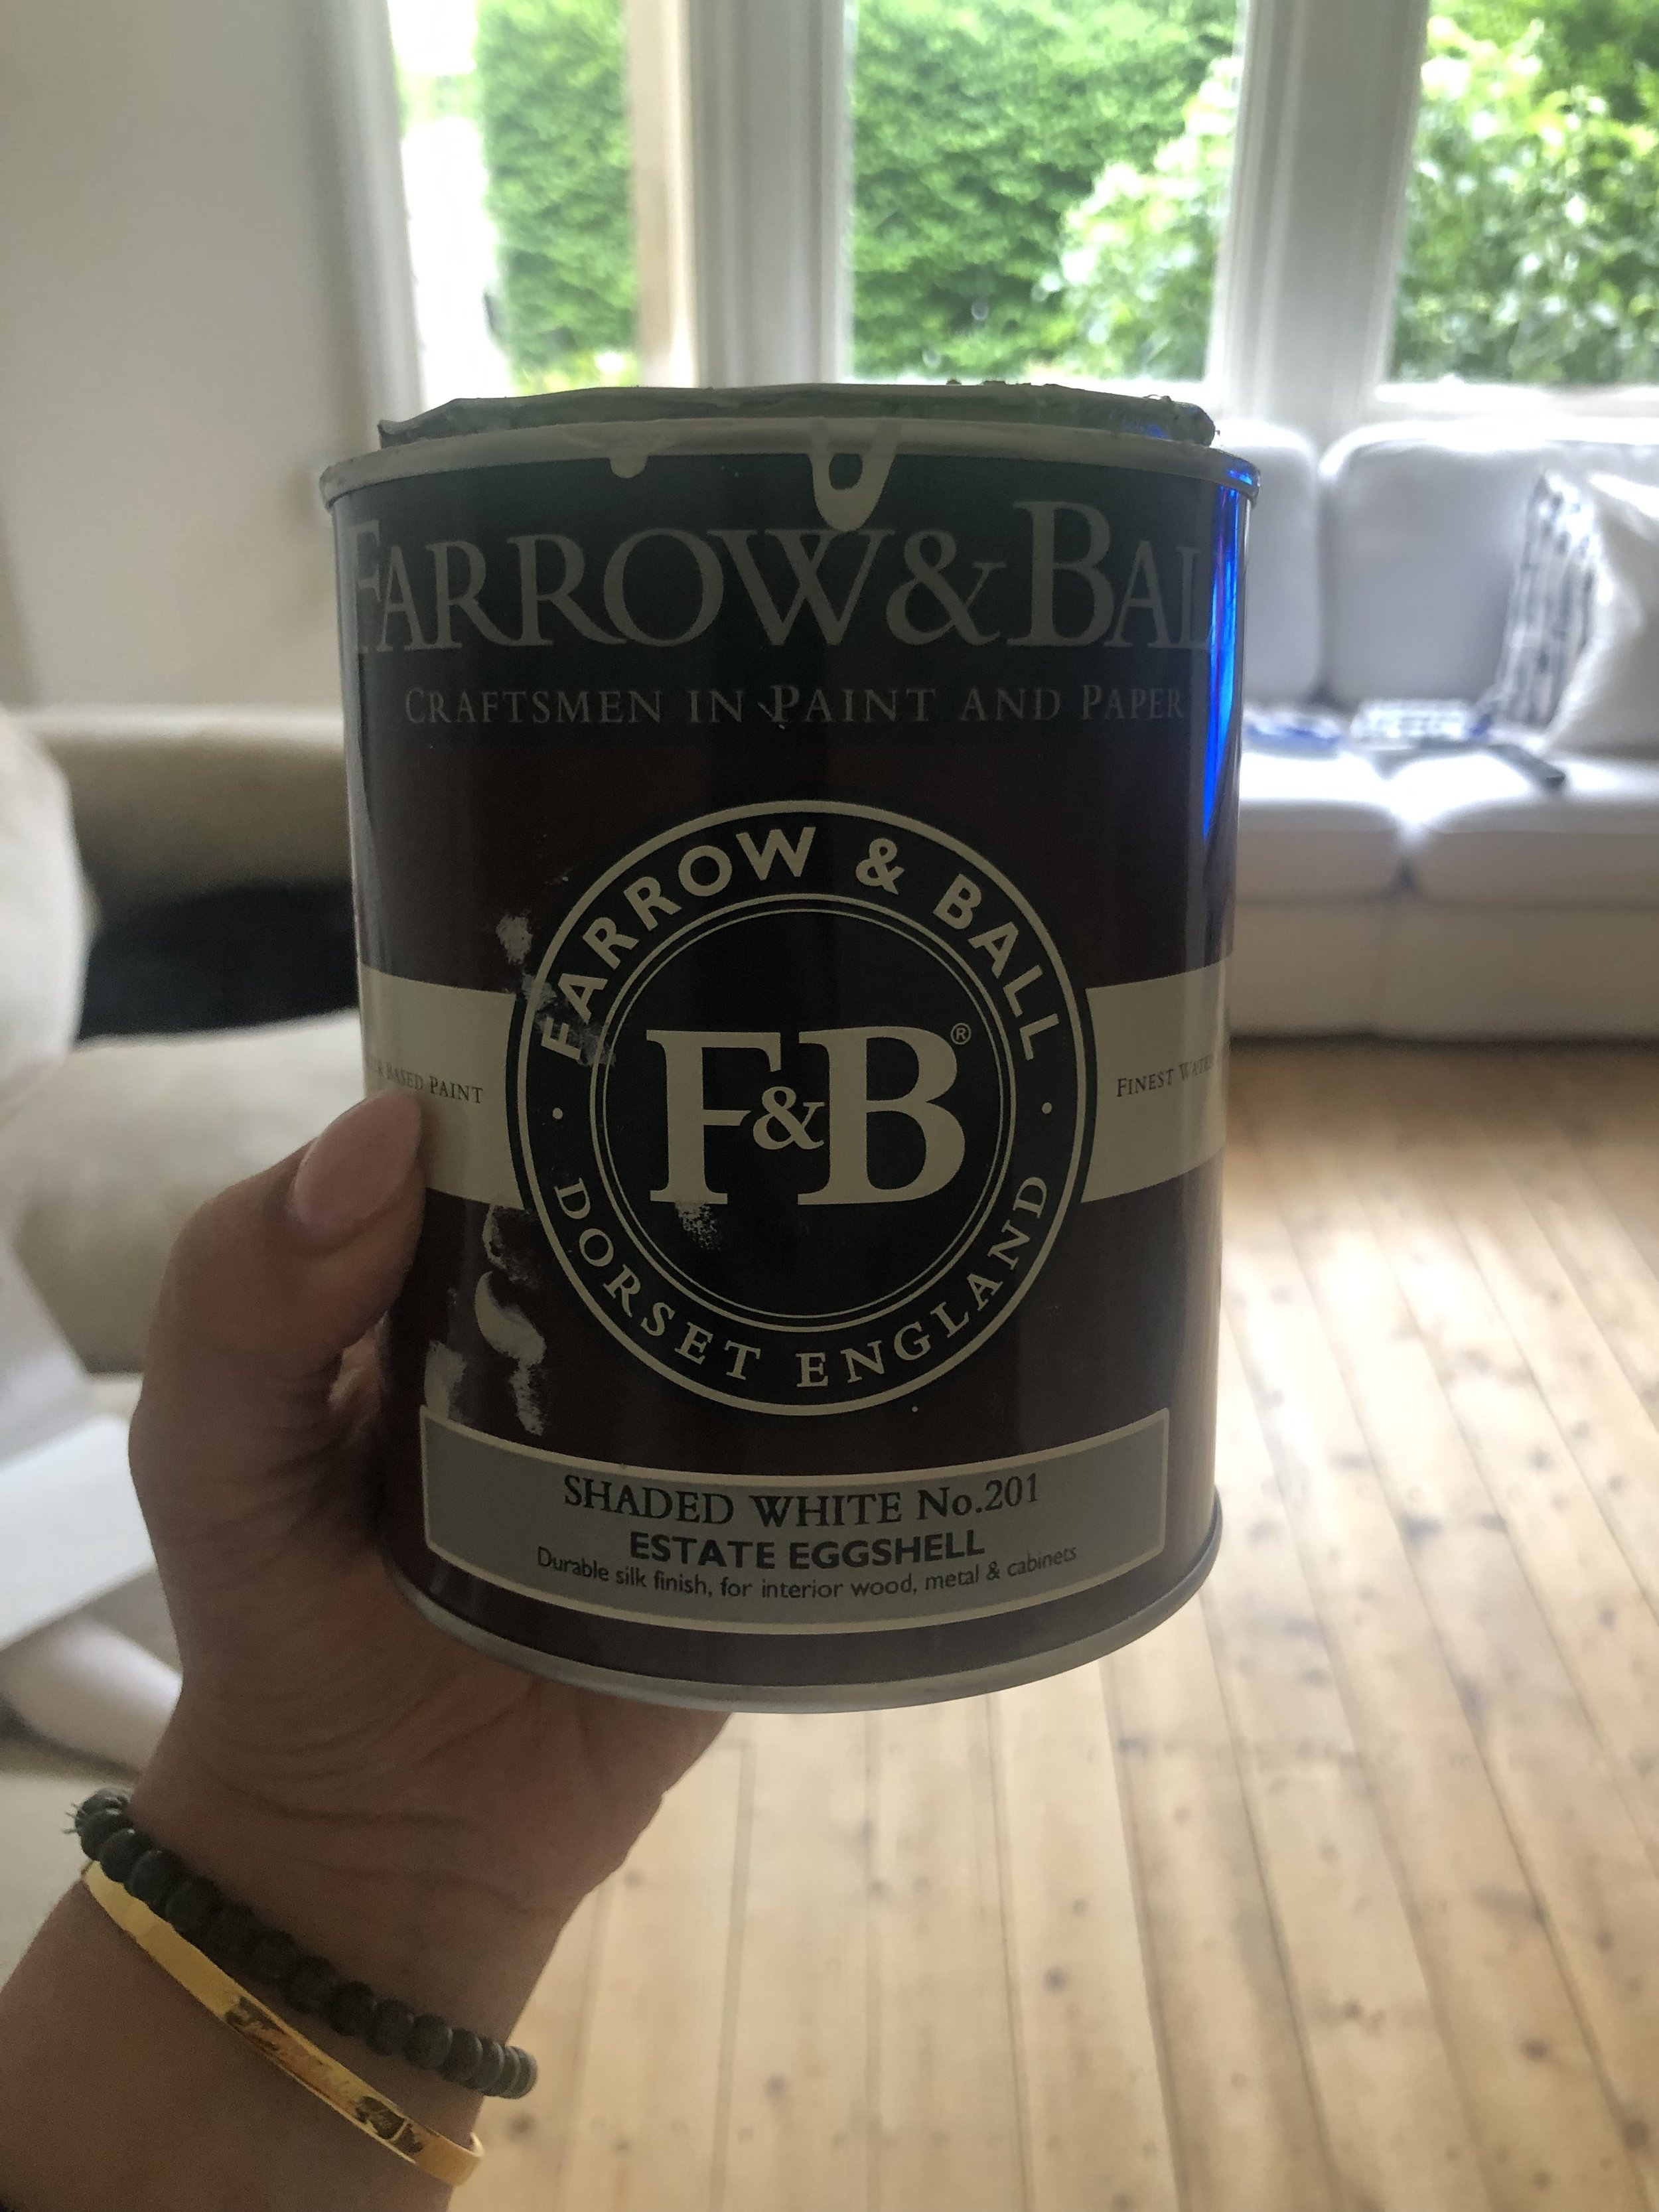 We chose Farrow & Ball Estate Eggshell in Shaded White for windows, door and skirting boards